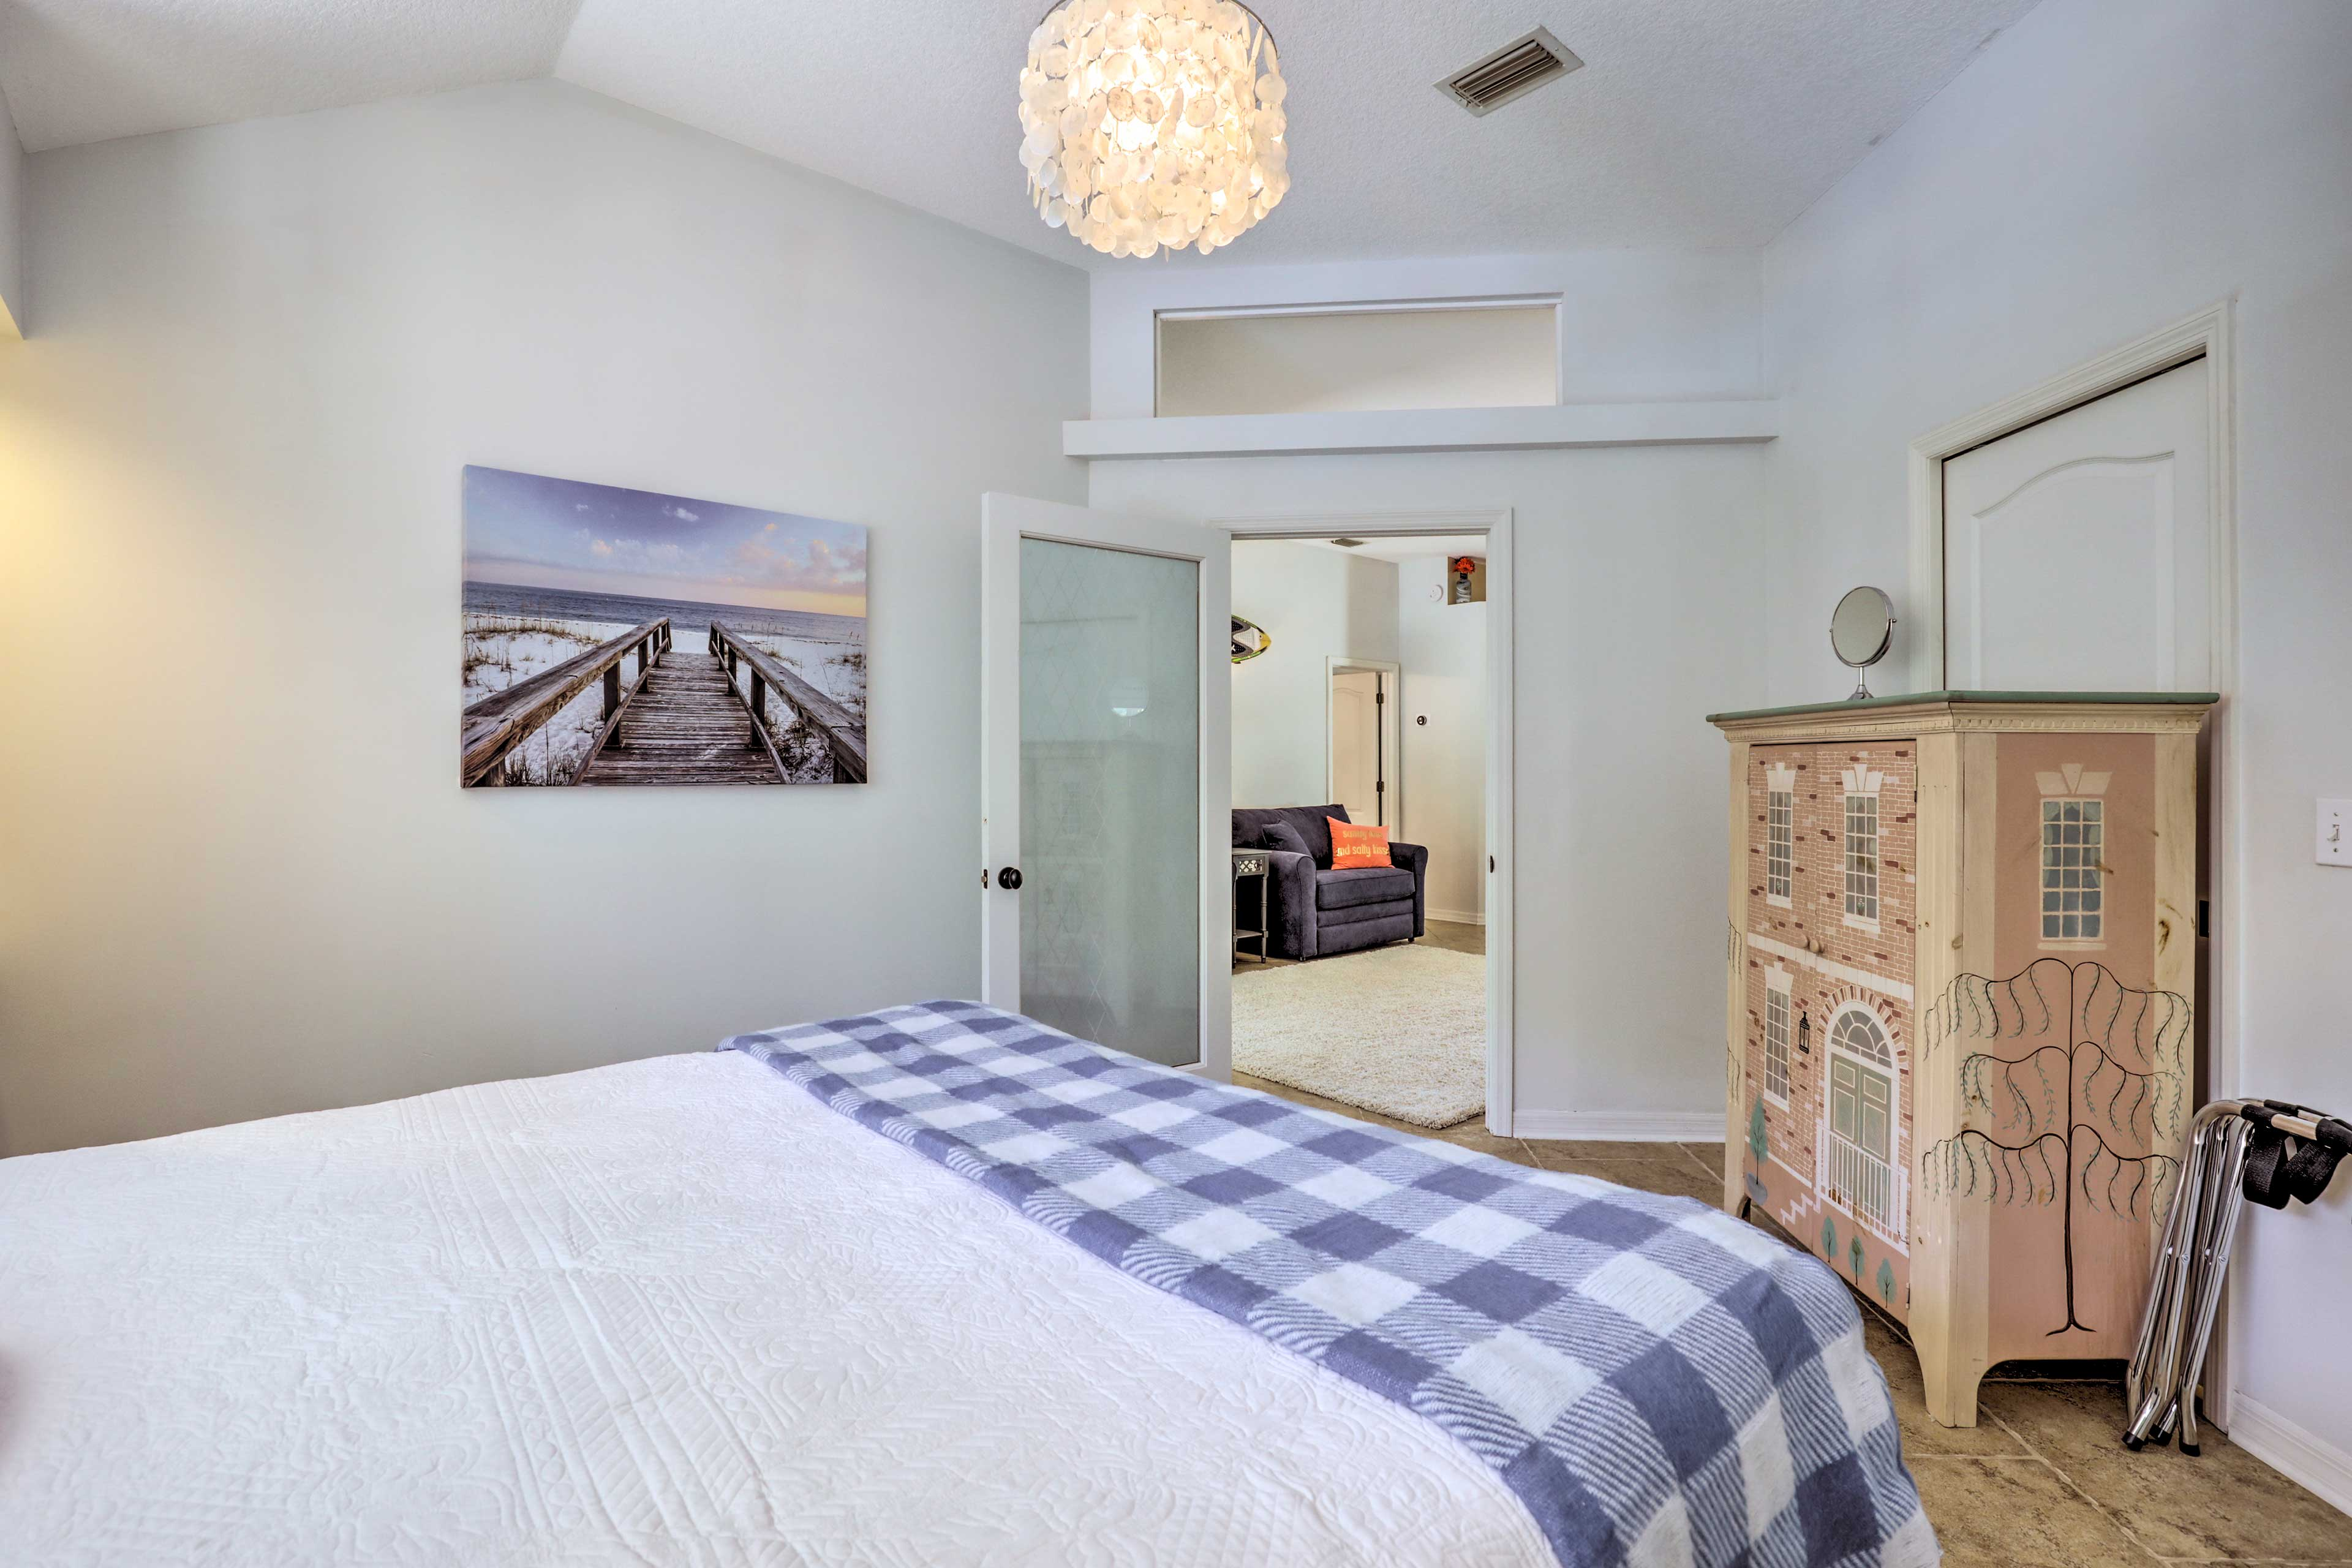 Sleep soundly in this bright and airy room!